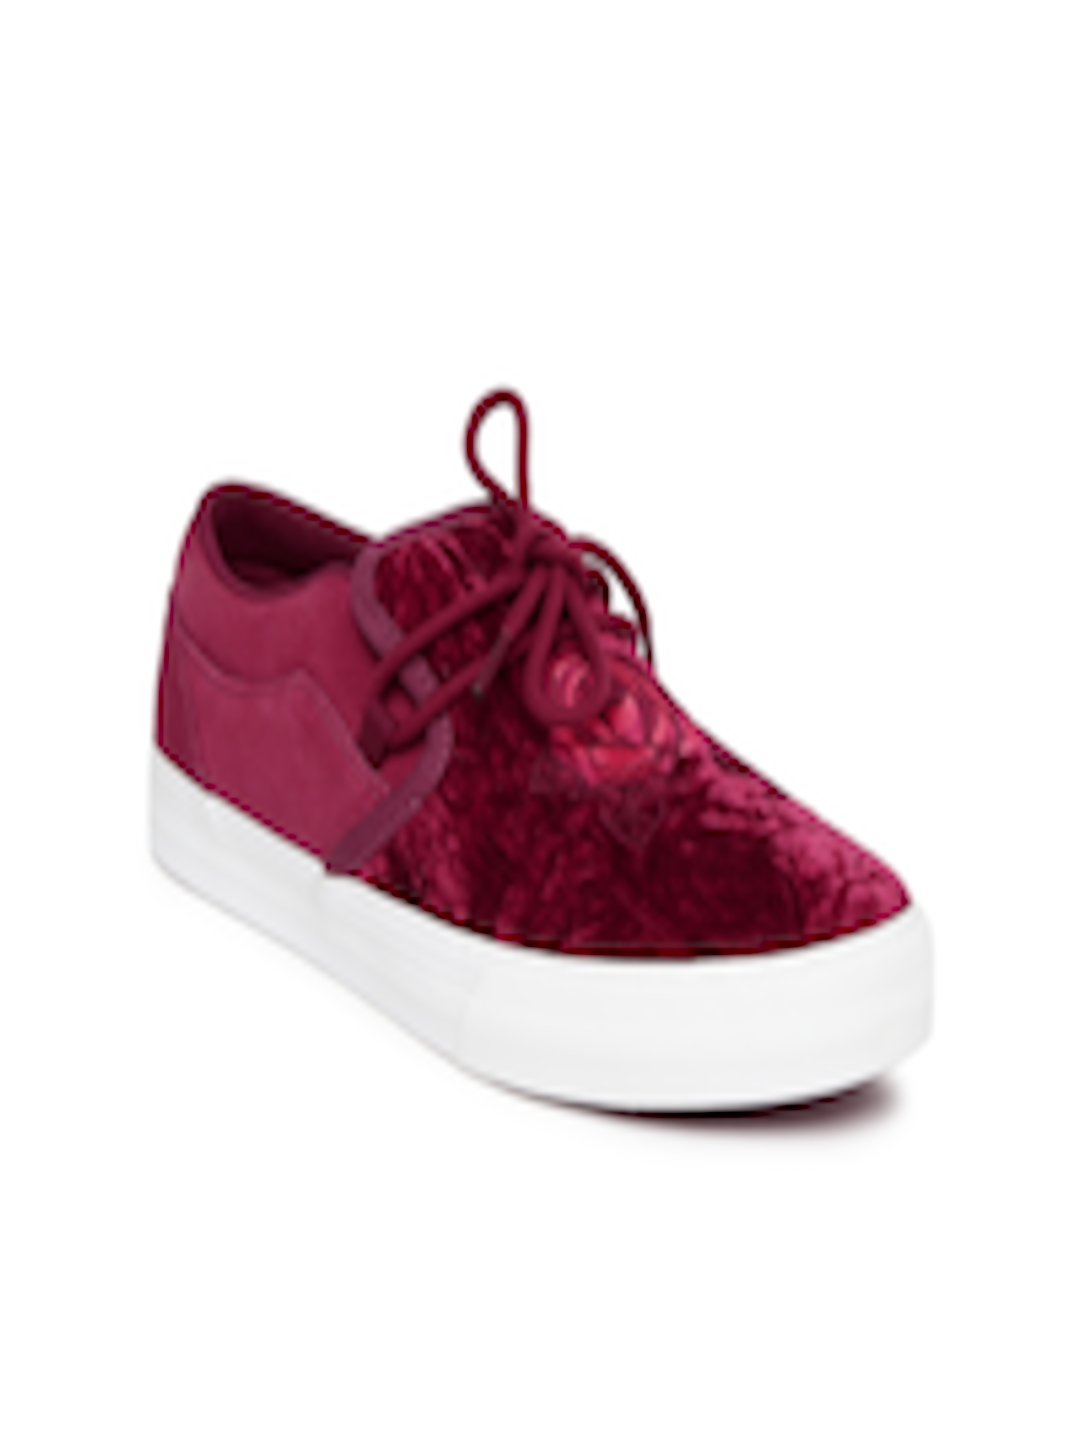 01ba8b263e13 Buy Supra Disney Women Red CUBANA Skate Shoes - Casual Shoes for ...